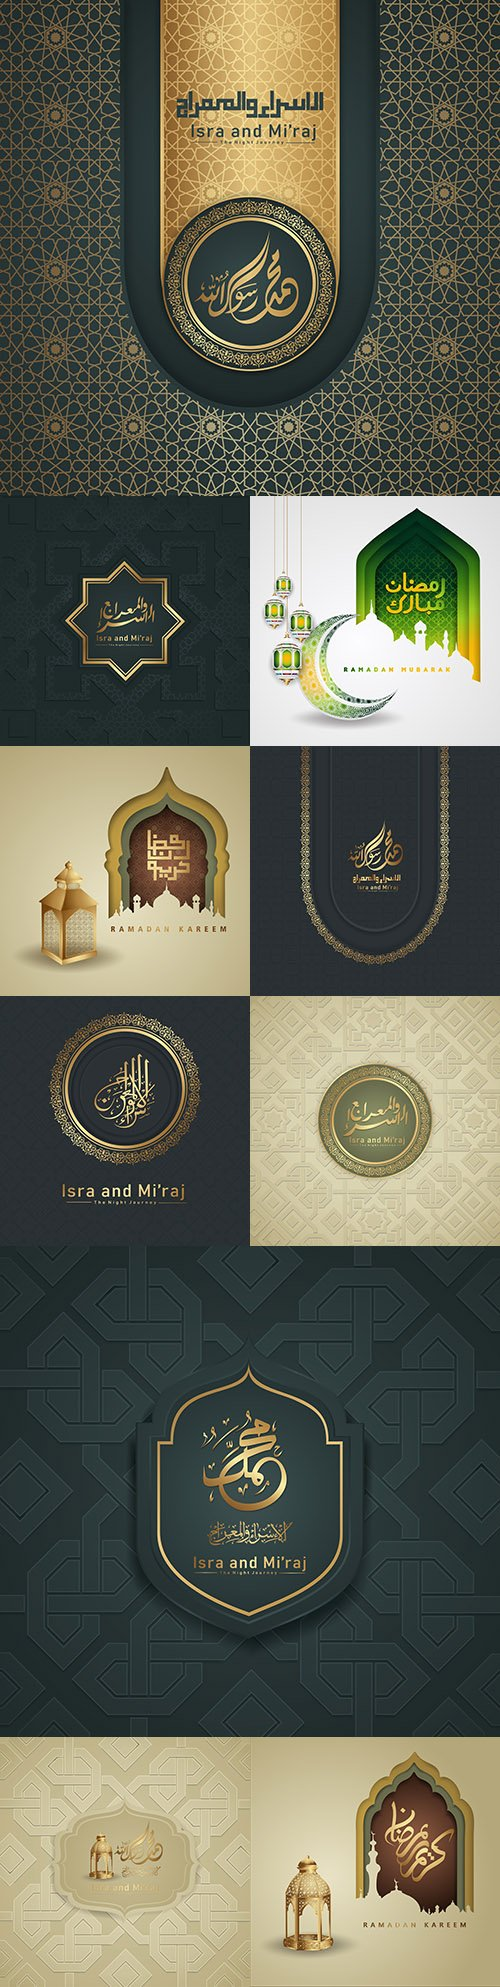 Isra and Mi'raj and elegant Ramadan design with Arabic calligraphy